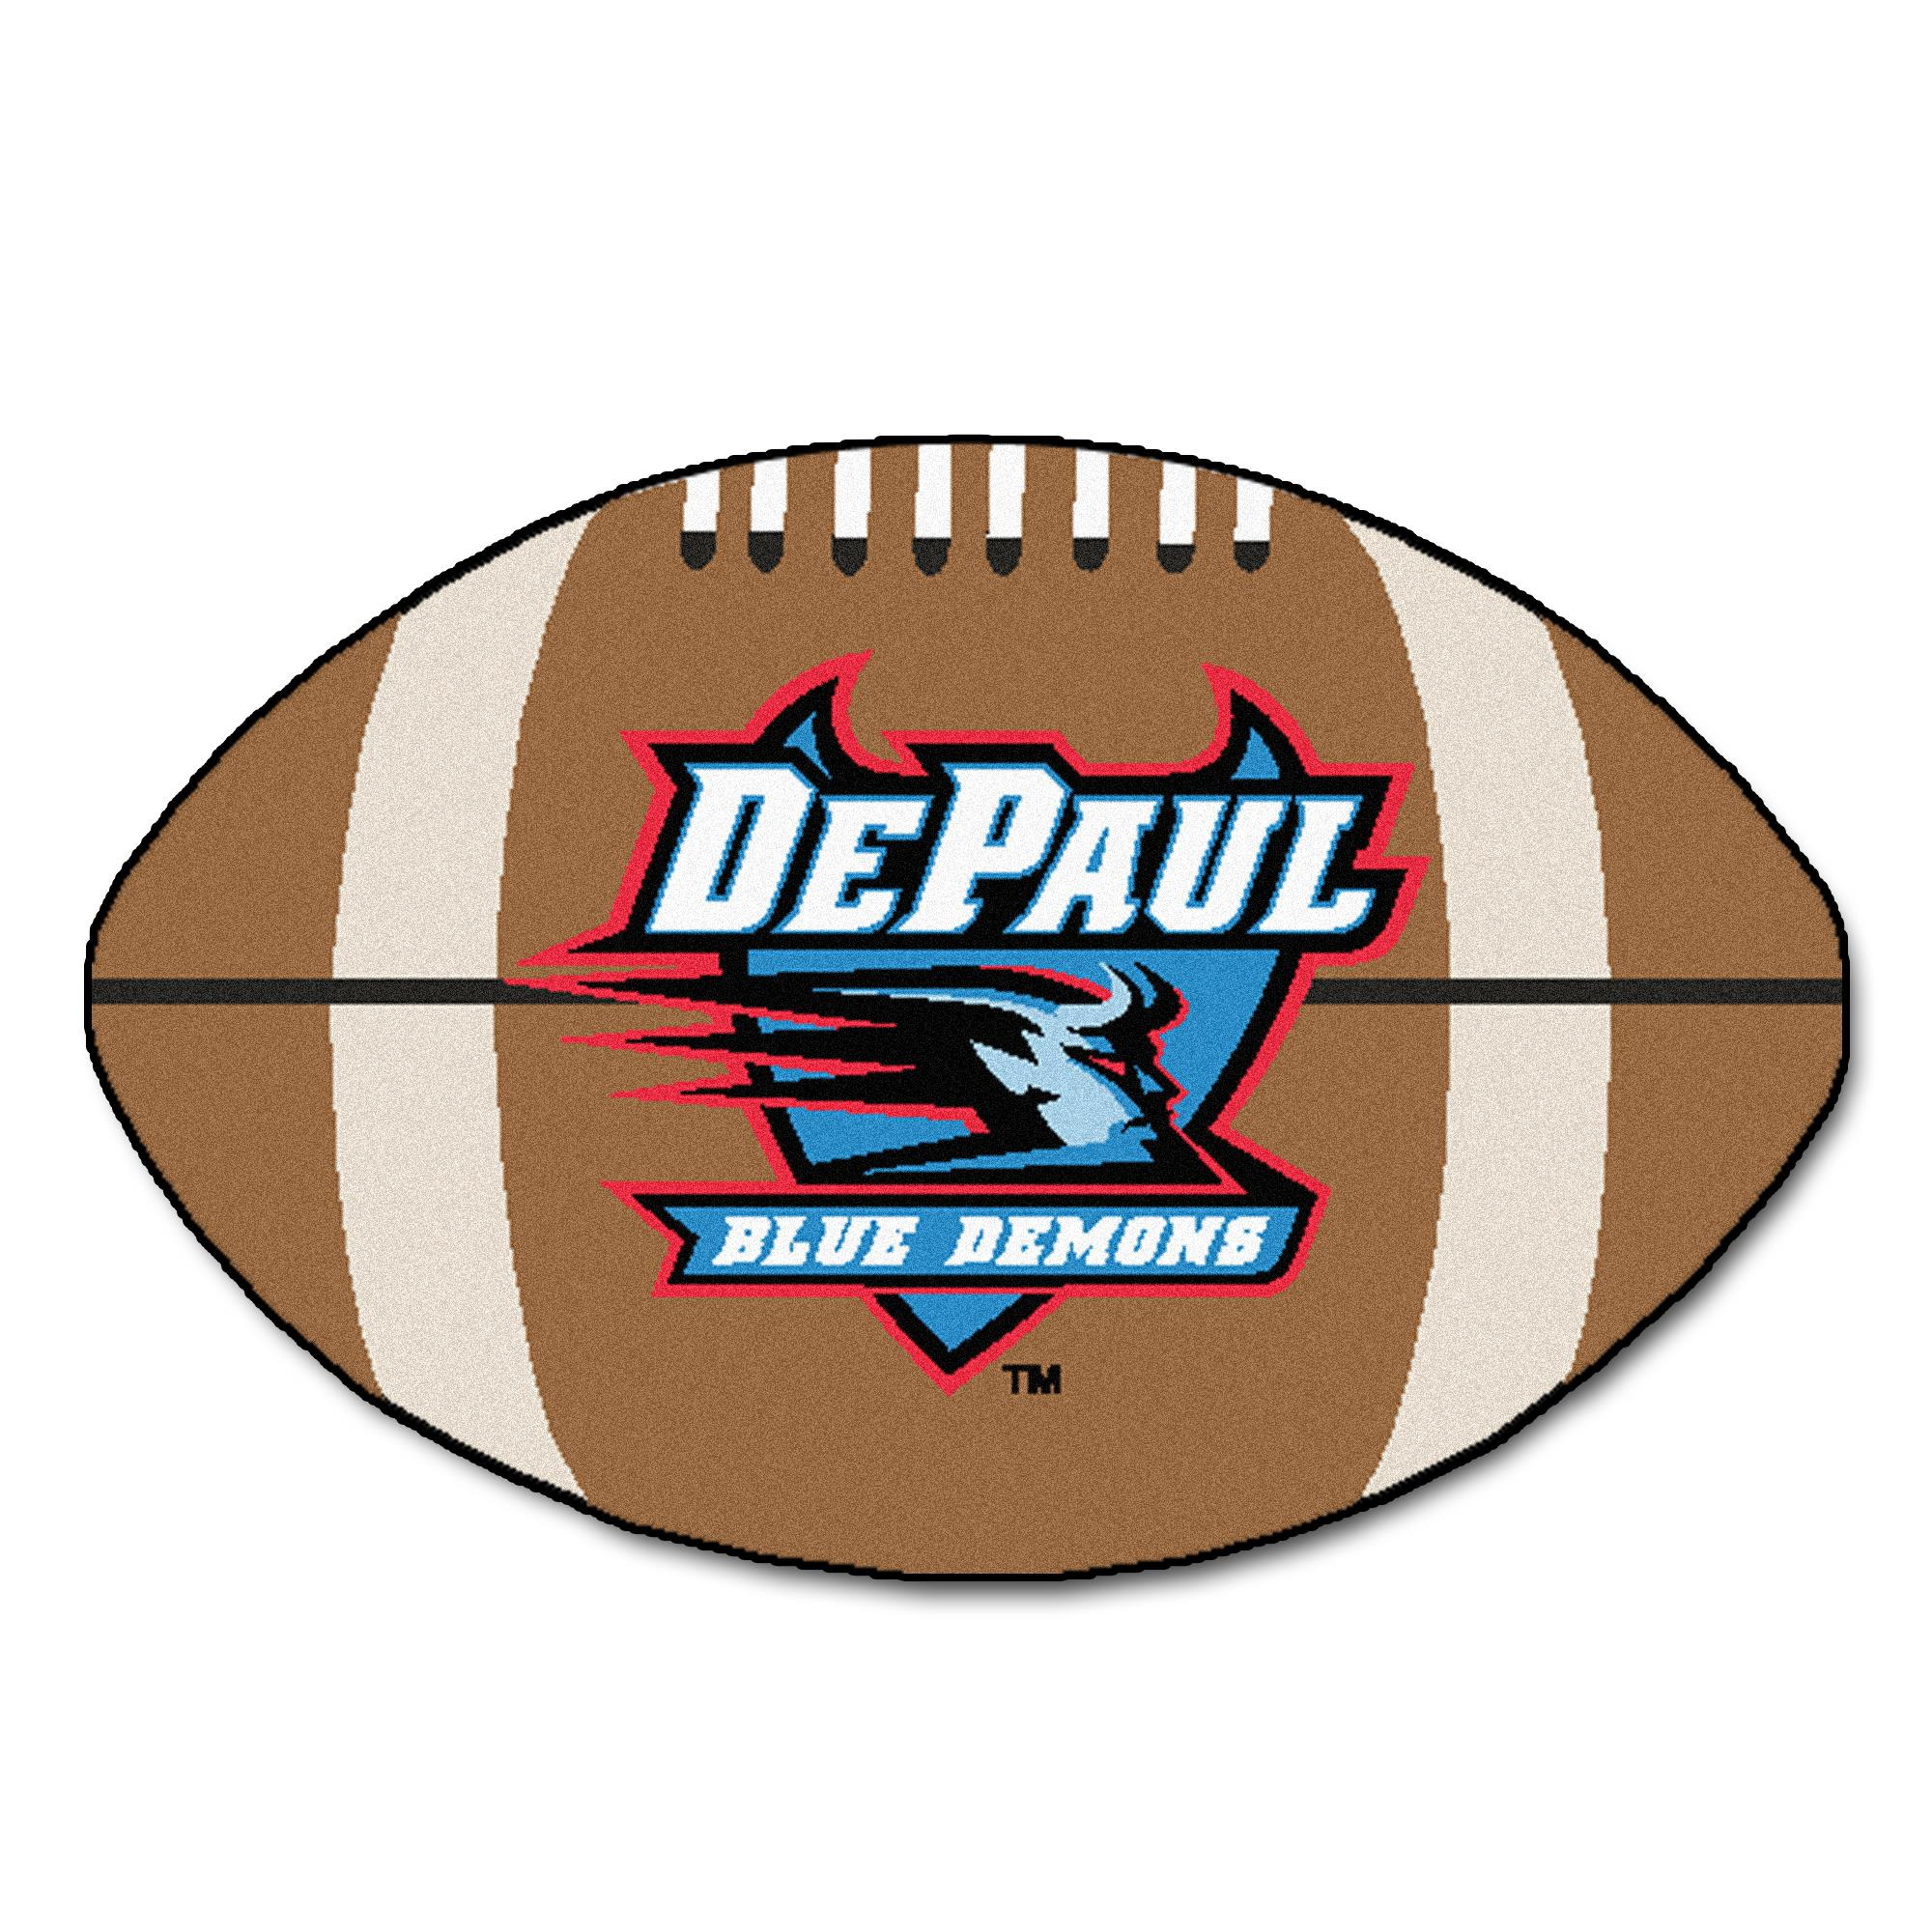 Depaul University Depaul University Football Mat 27